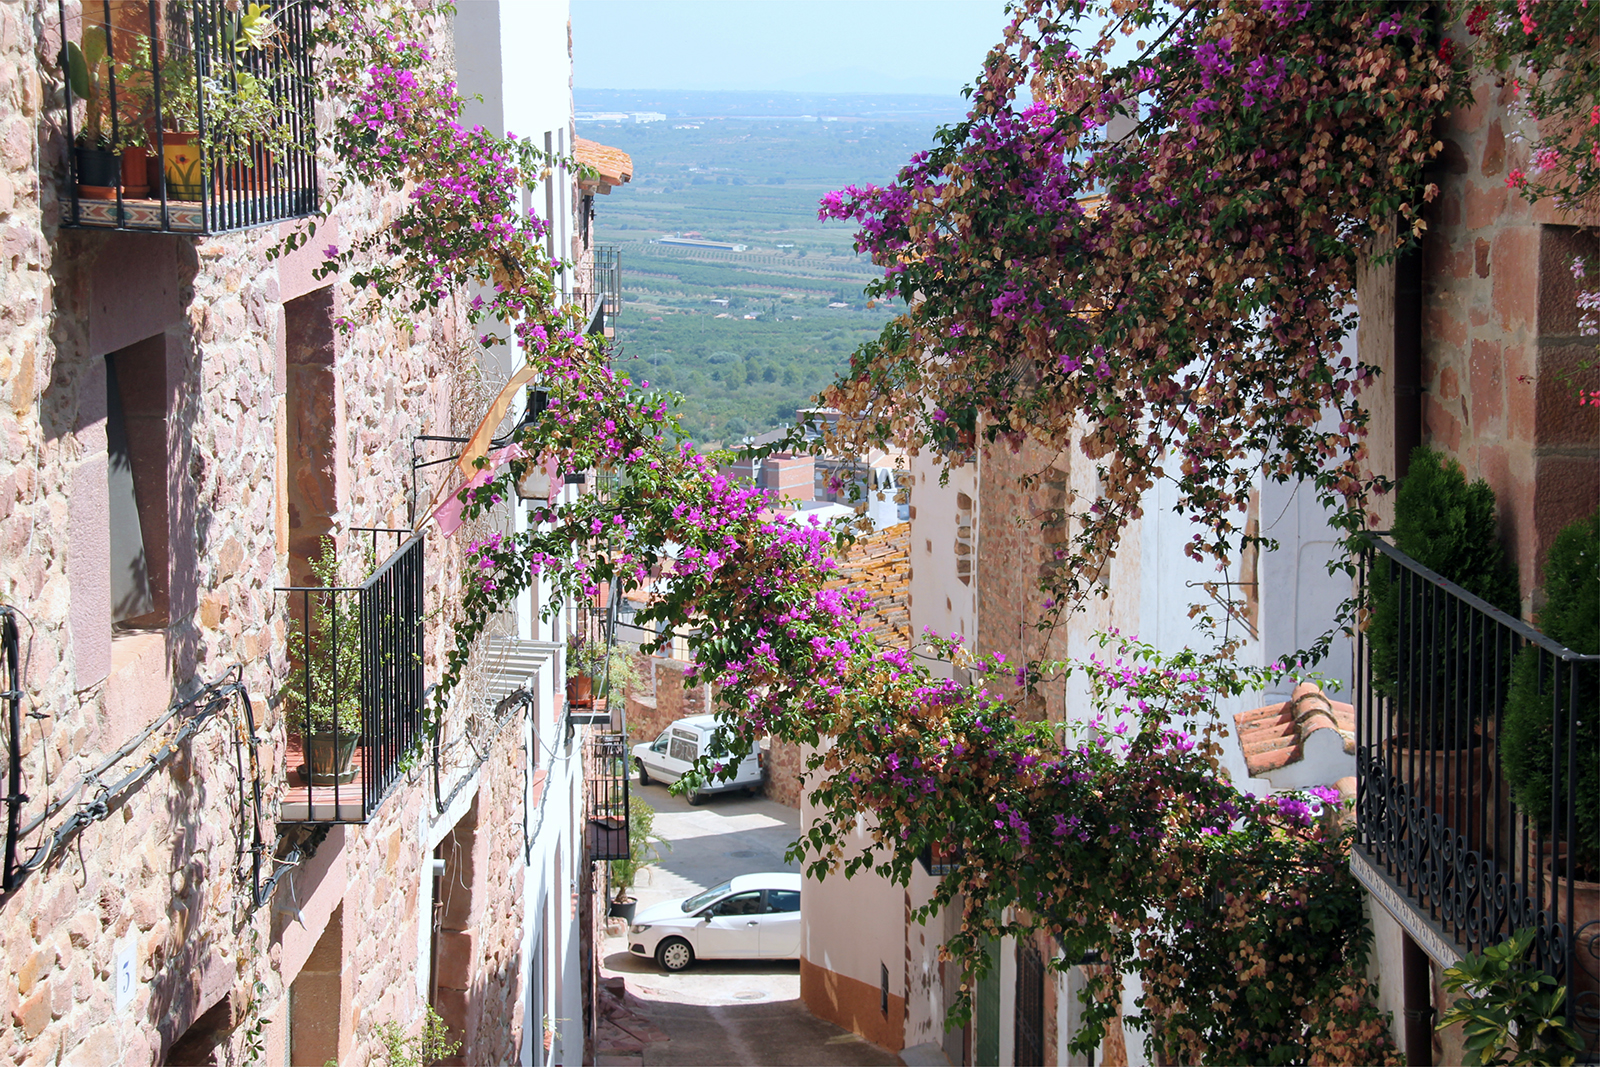 Vilafames Spain views with flowers